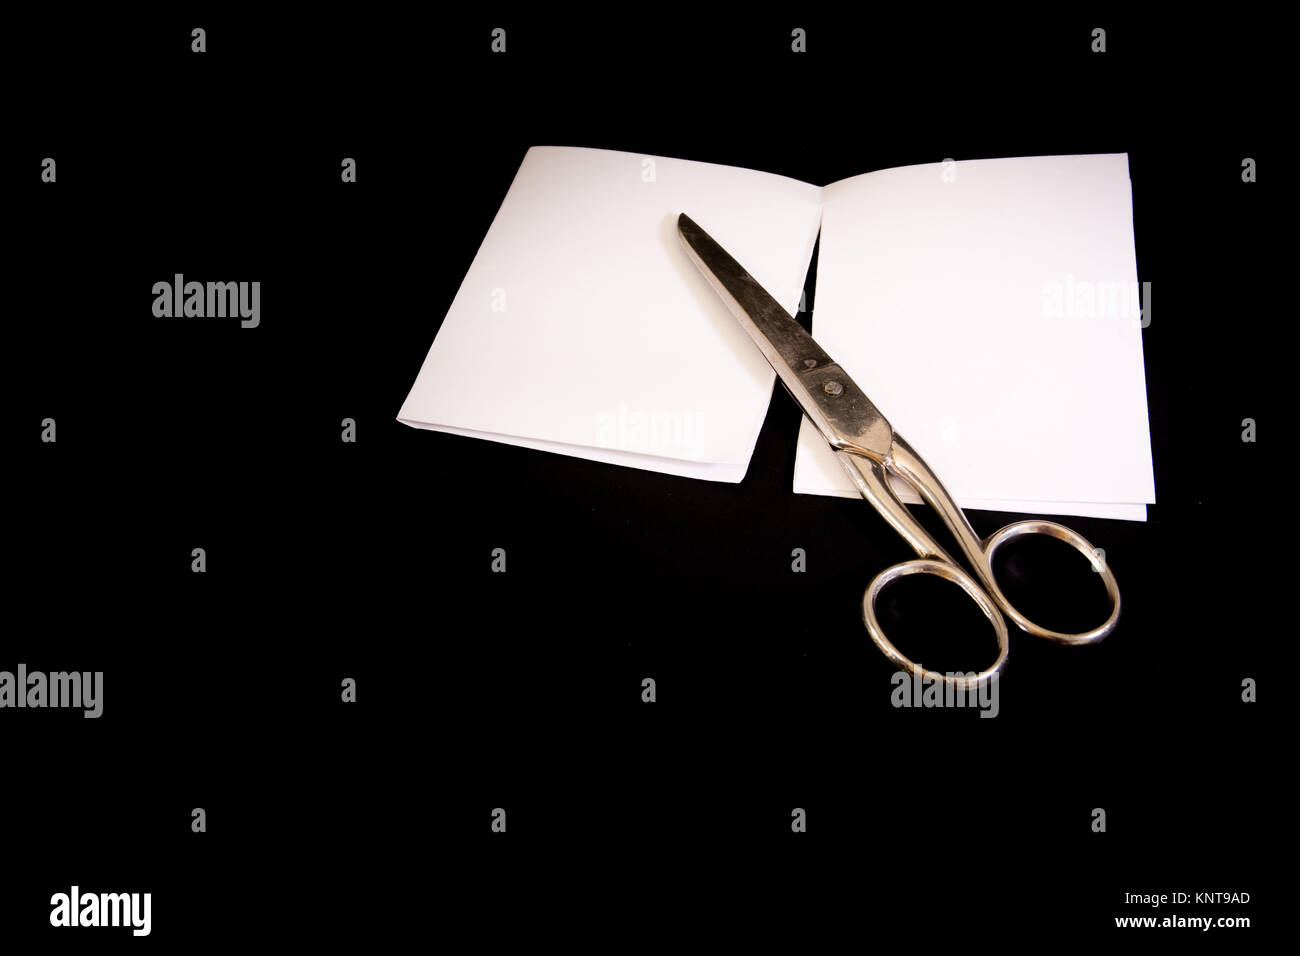 Scissors Cut Paper Game Victory Lost Black Isolated Background Metal - Stock Image